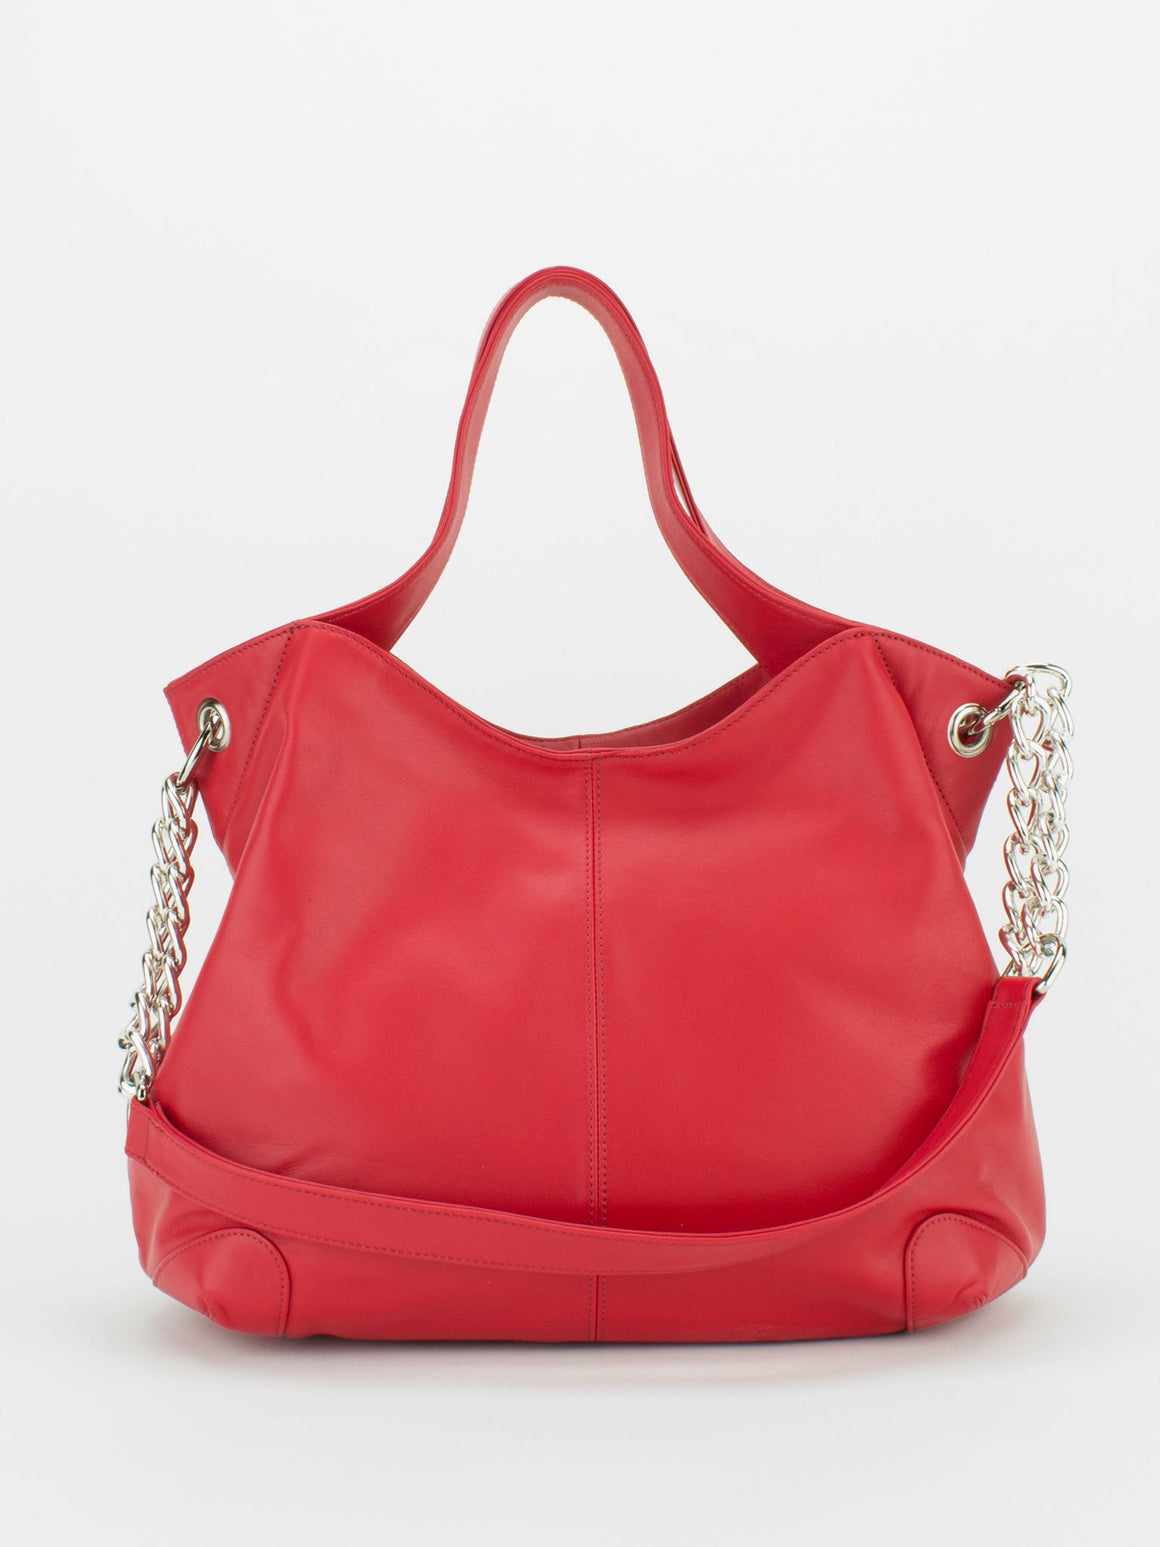 SHARON Chain Accent Leather Bag - Red